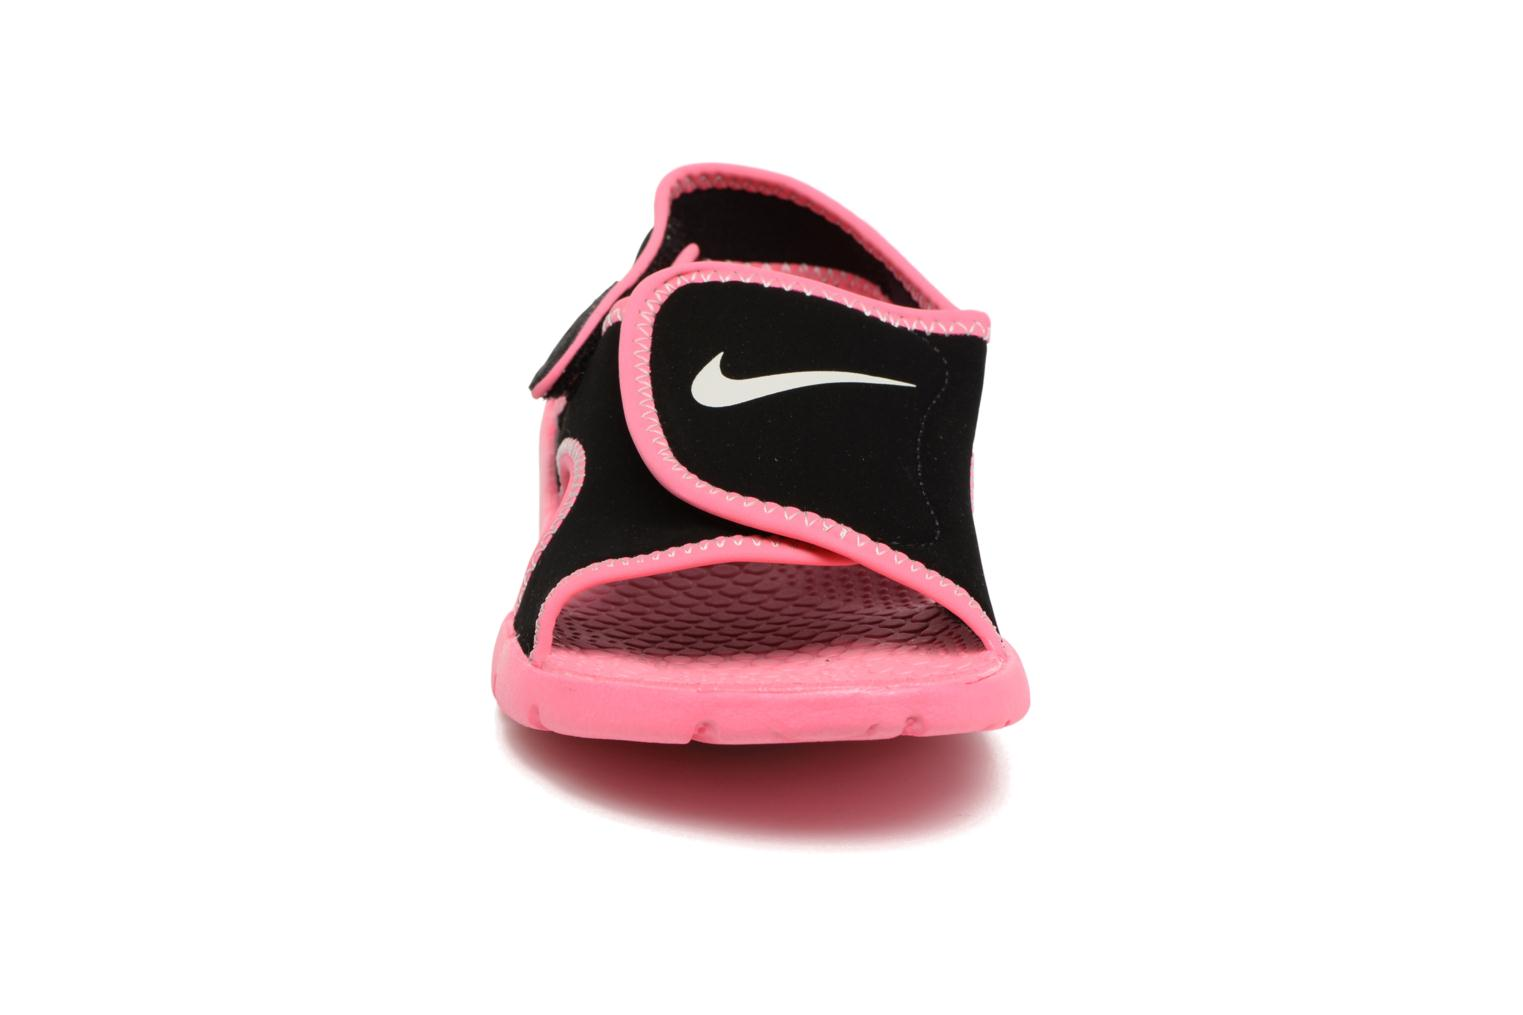 Nike Sunray Pink Platinum Adjust Black Gs Pure Digital Ps Nike 4 r15nfrAq